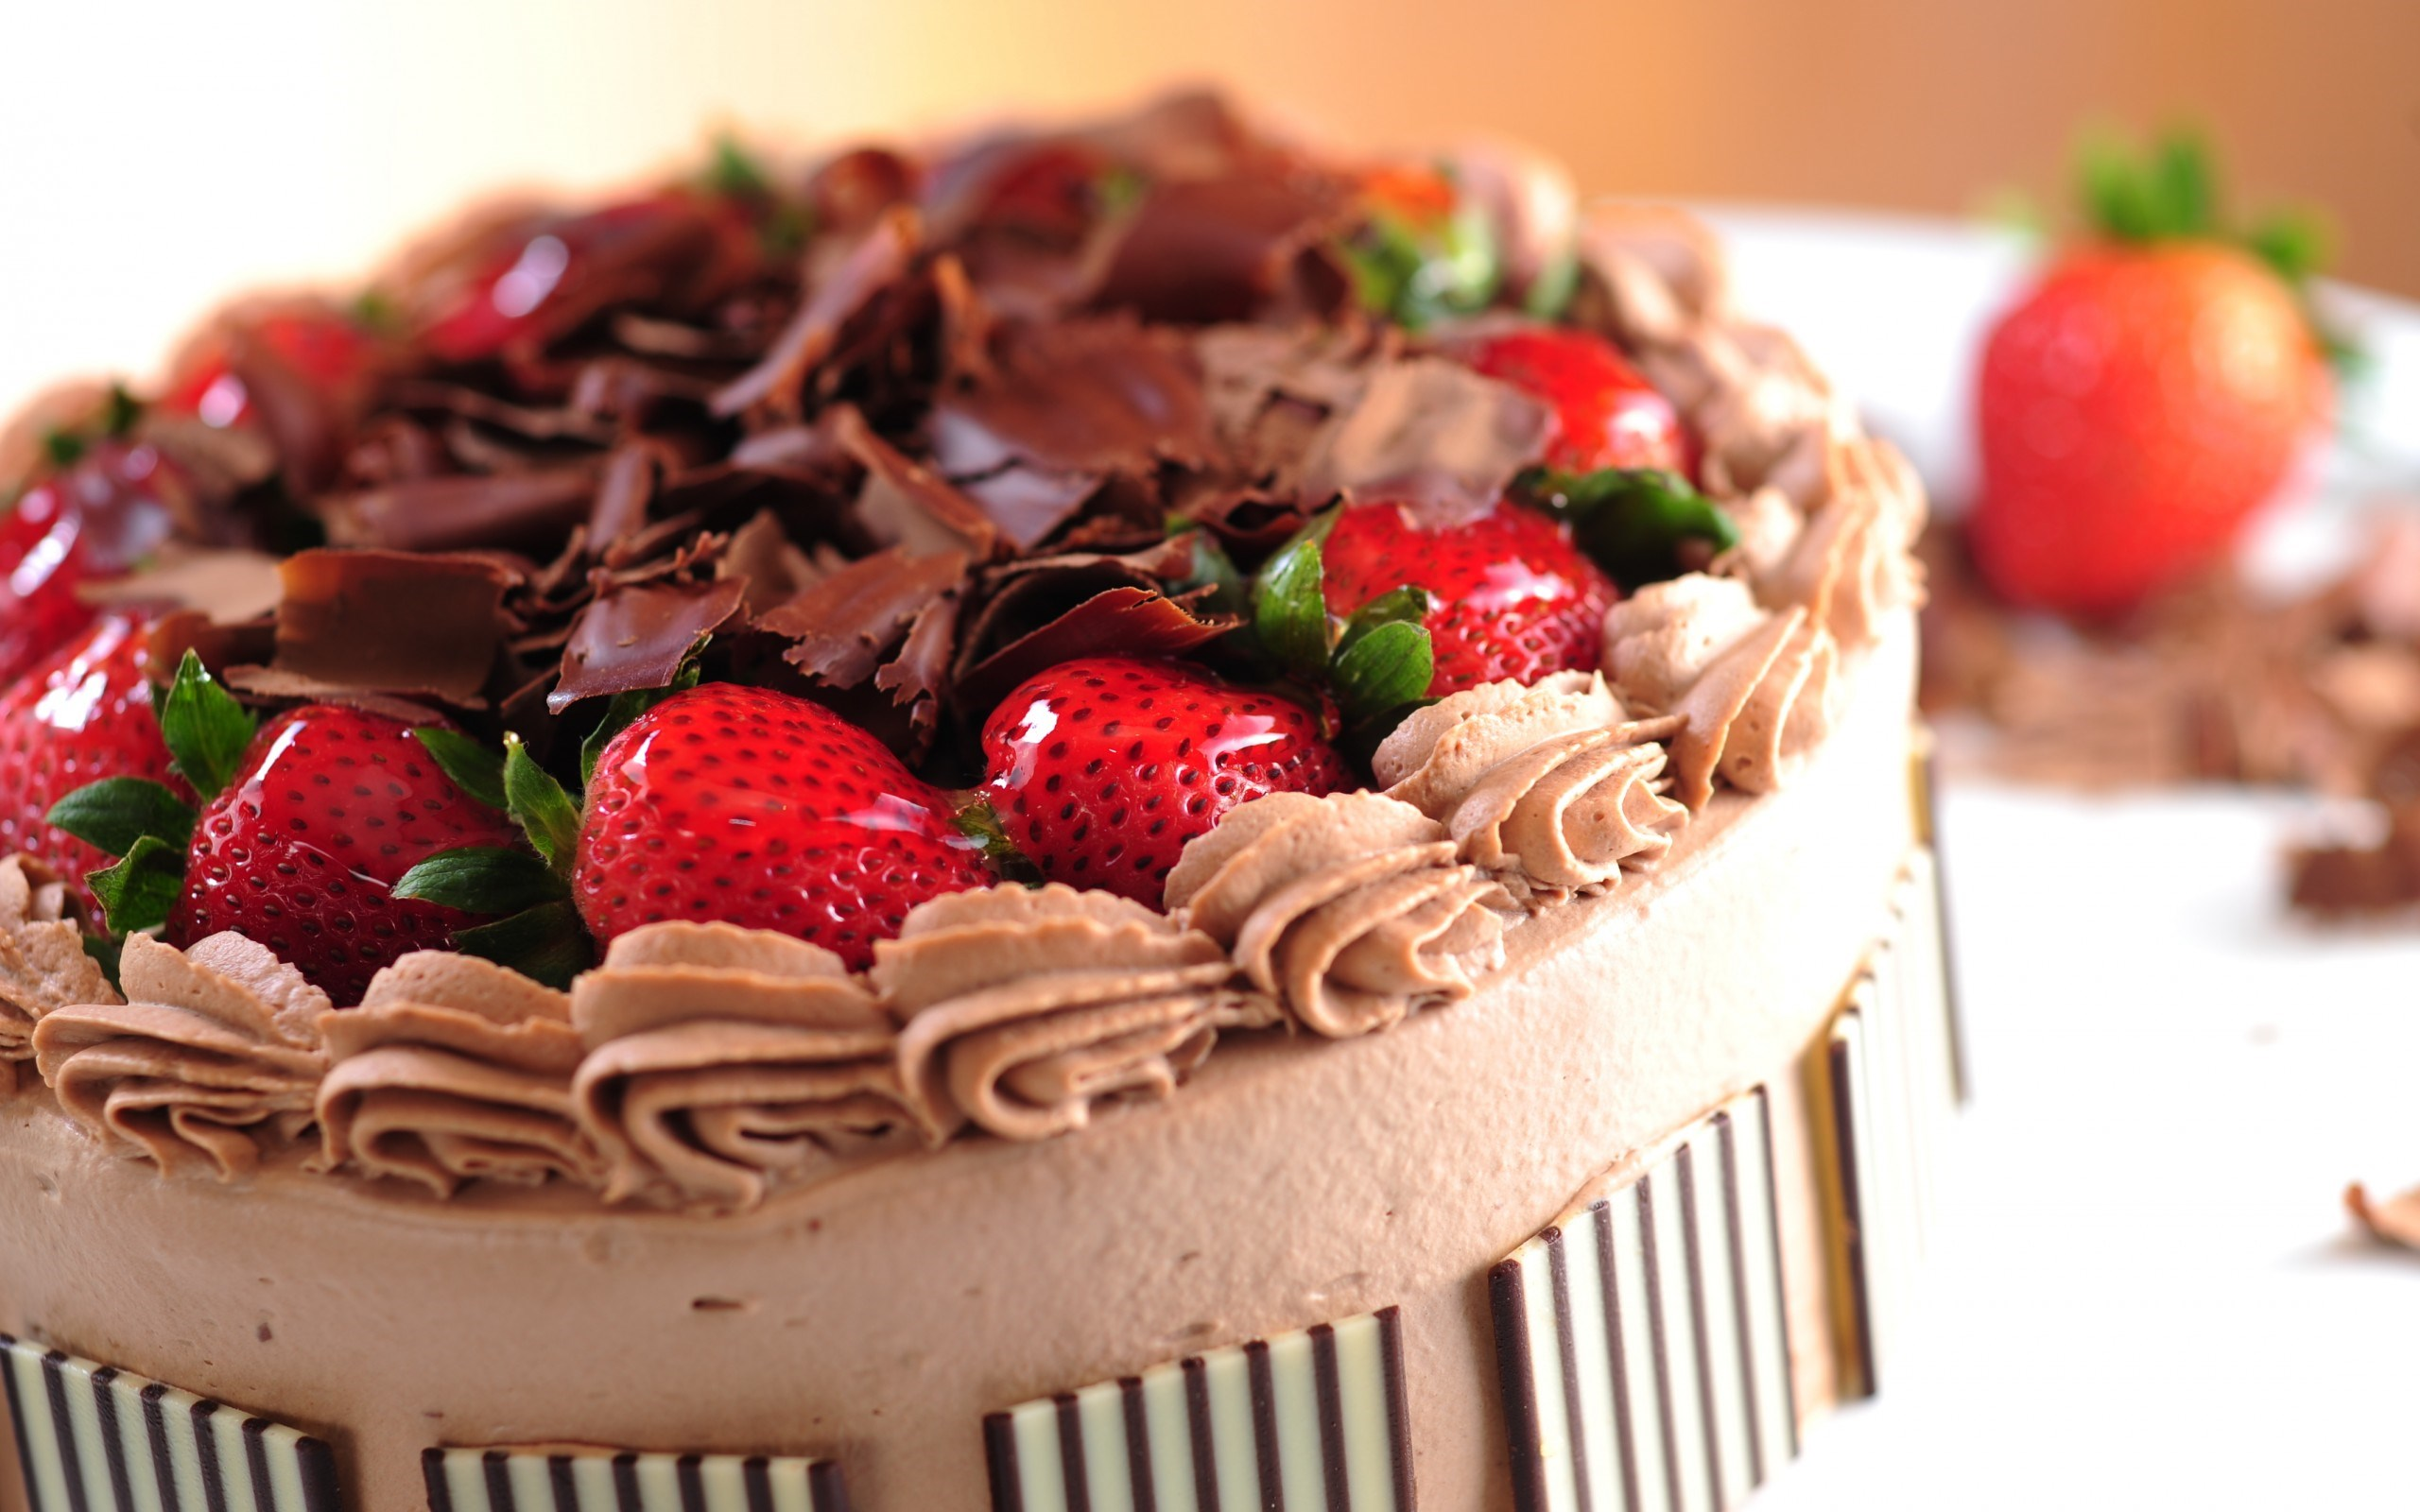 Food Dessert Cake Strawberries Berries Sweet